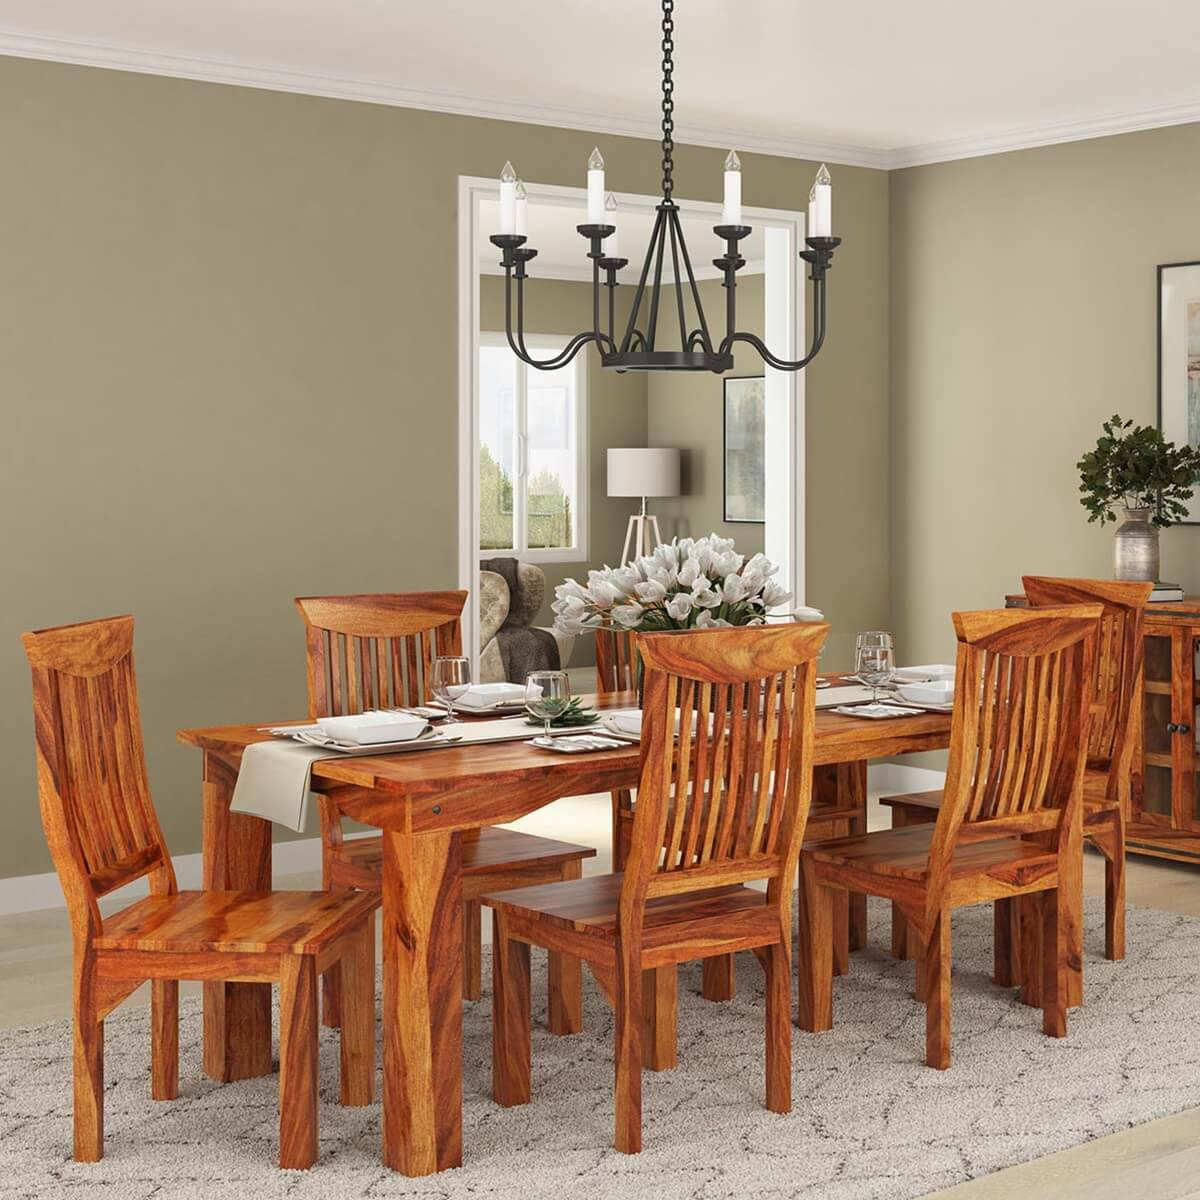 Wooden Dining Set ~ Idaho modern rustic solid wood dining table chair set